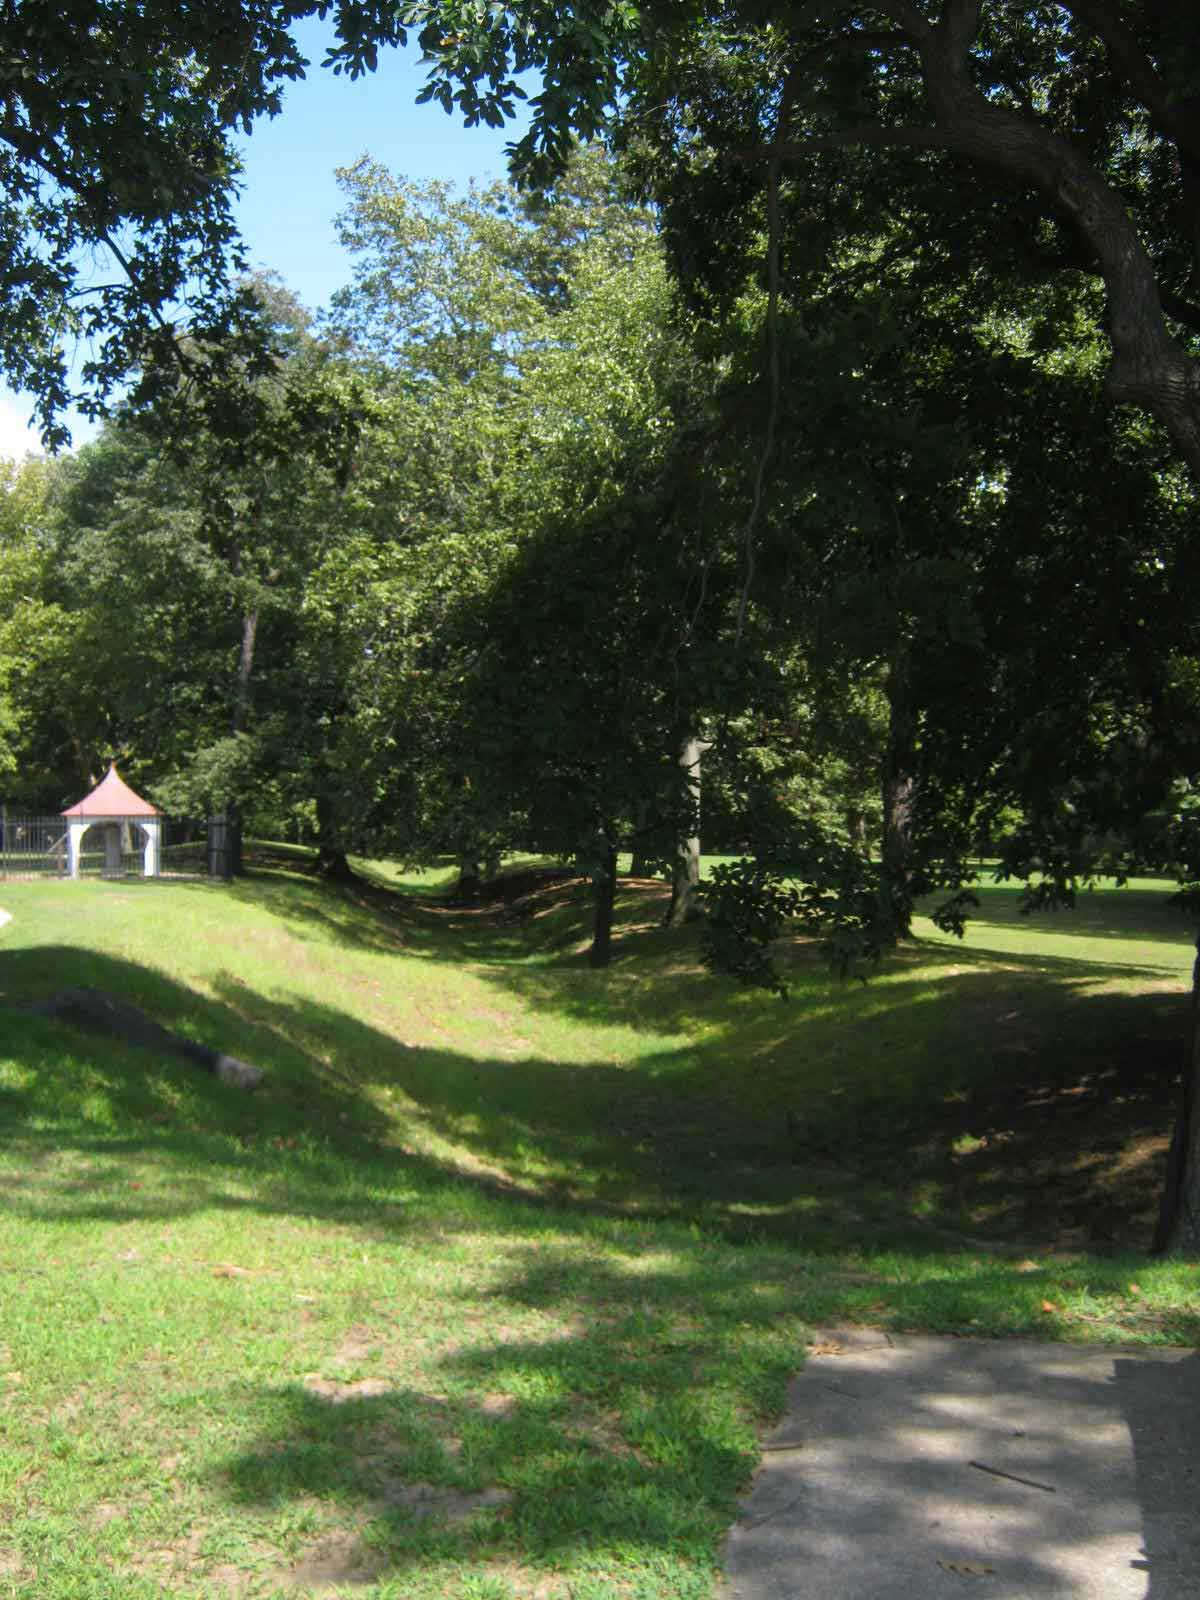 There are some great wooded areas at Challenge Grove Park near Cherry Hill, NJ.